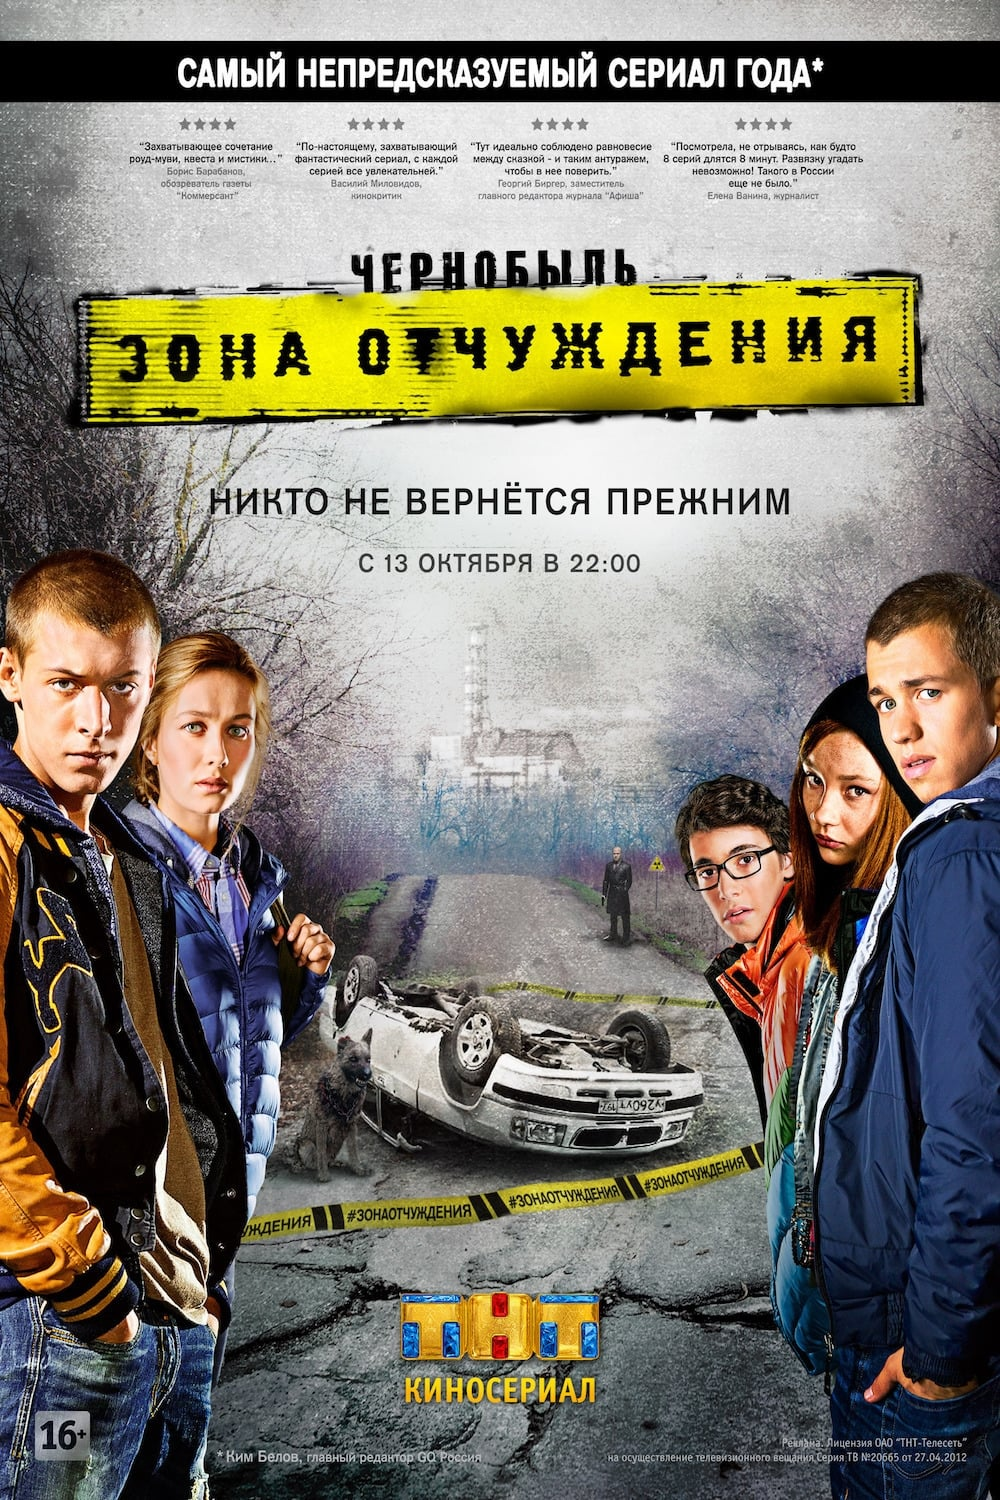 Chernobyl: Exclusion Zone Poster